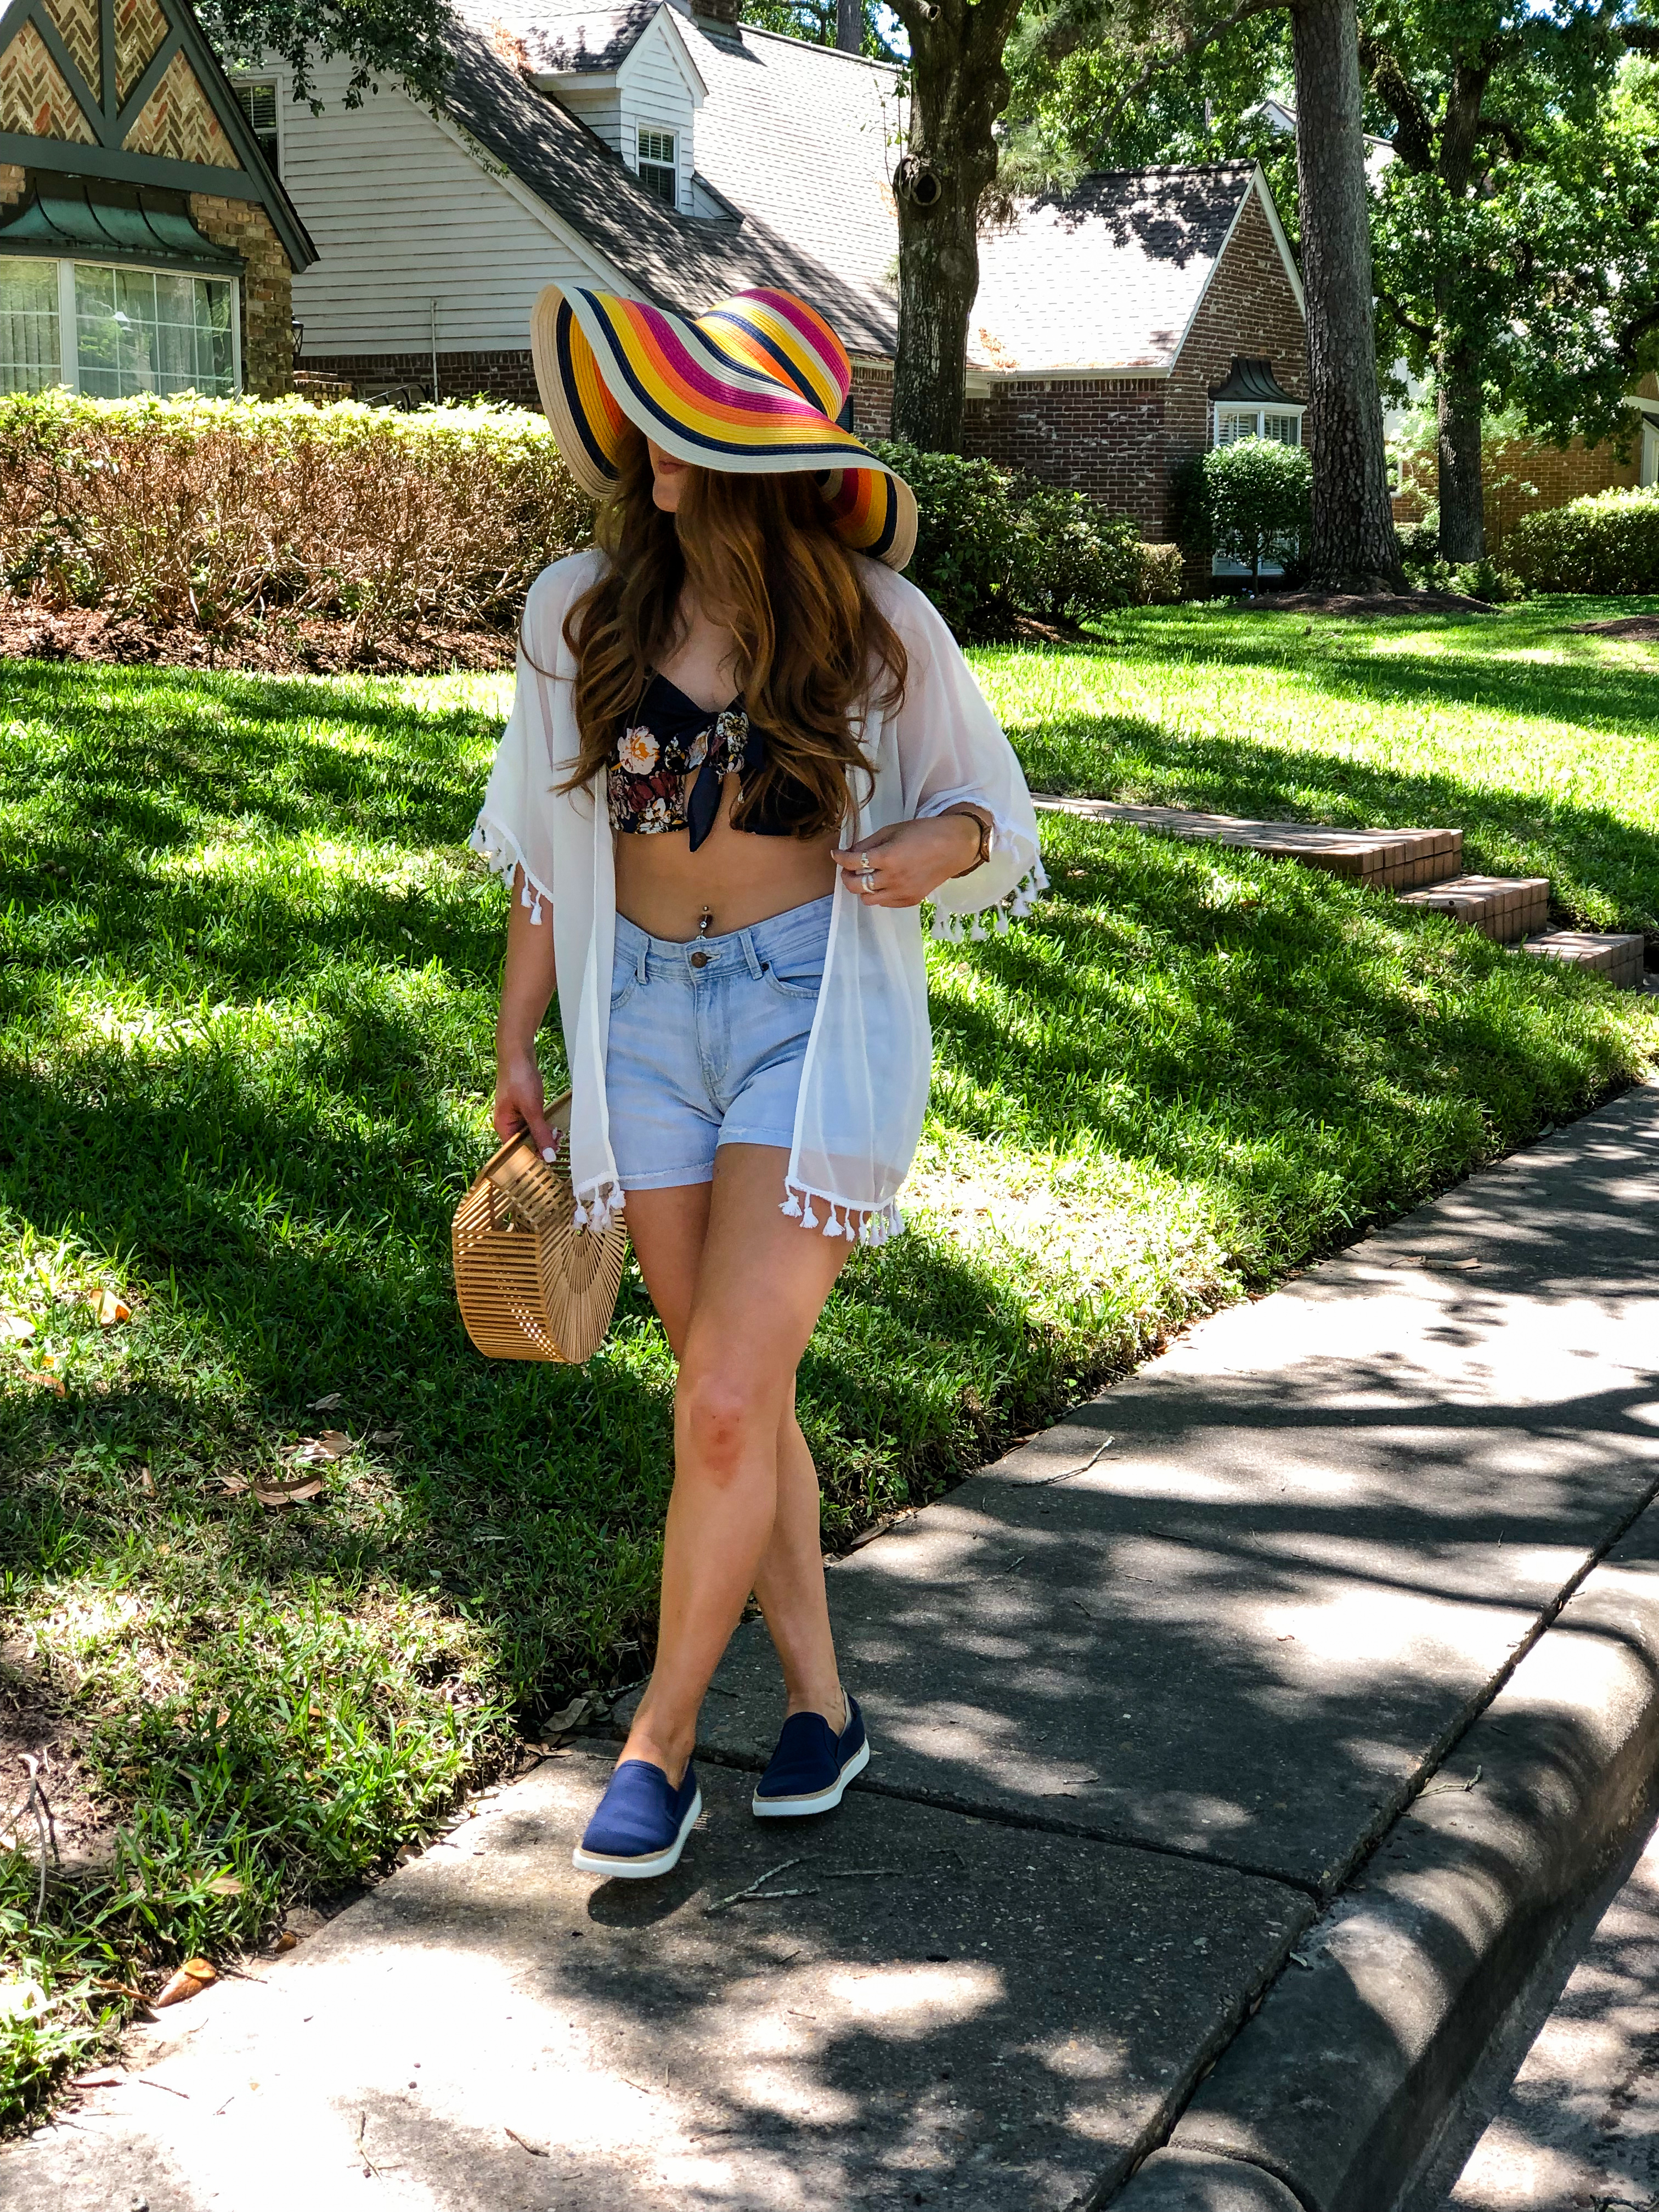 Fun in a Colorful Floppy Sunhat   Chaos and Coffee